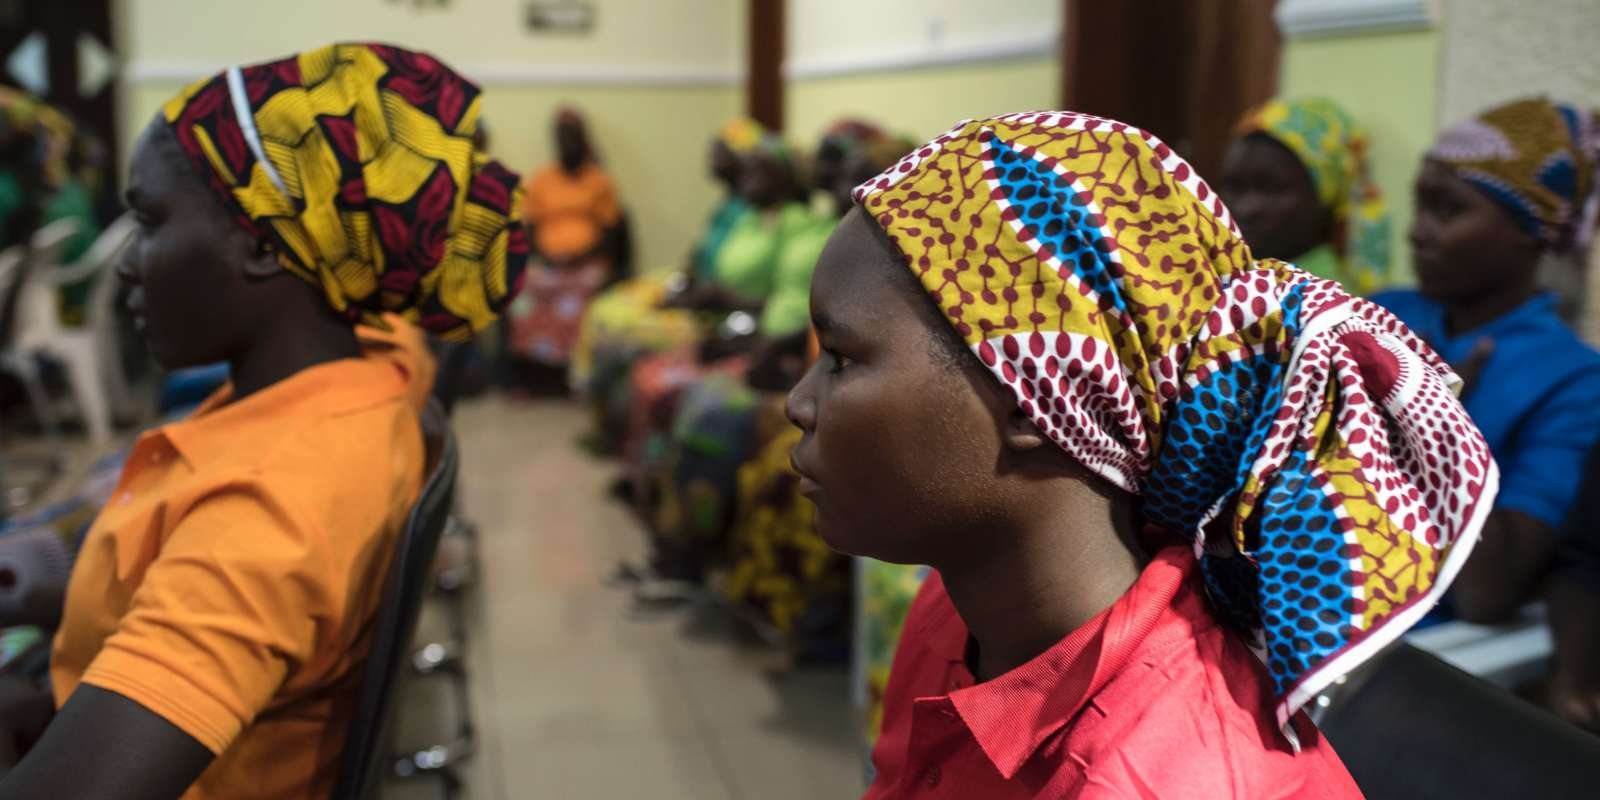 Some of the recently released girls from Chibok wait in Abuja on May 8, 2017. The United Nations on May 8, 2017 welcomed the release of 82 Nigerian schoolgirls after years of Boko Haram captivity and appealed to their families and communities not to ostracize them. The teenage girls who were among more than 200 kidnapped in 2014 from the Government Girls Secondary School in Chibok, northeast Nigeria, northeast Nigeria, were freed on May 6, 2017 after a prisoner swap agreed with the Islamist group. / AFP / STEFAN HEUNIS